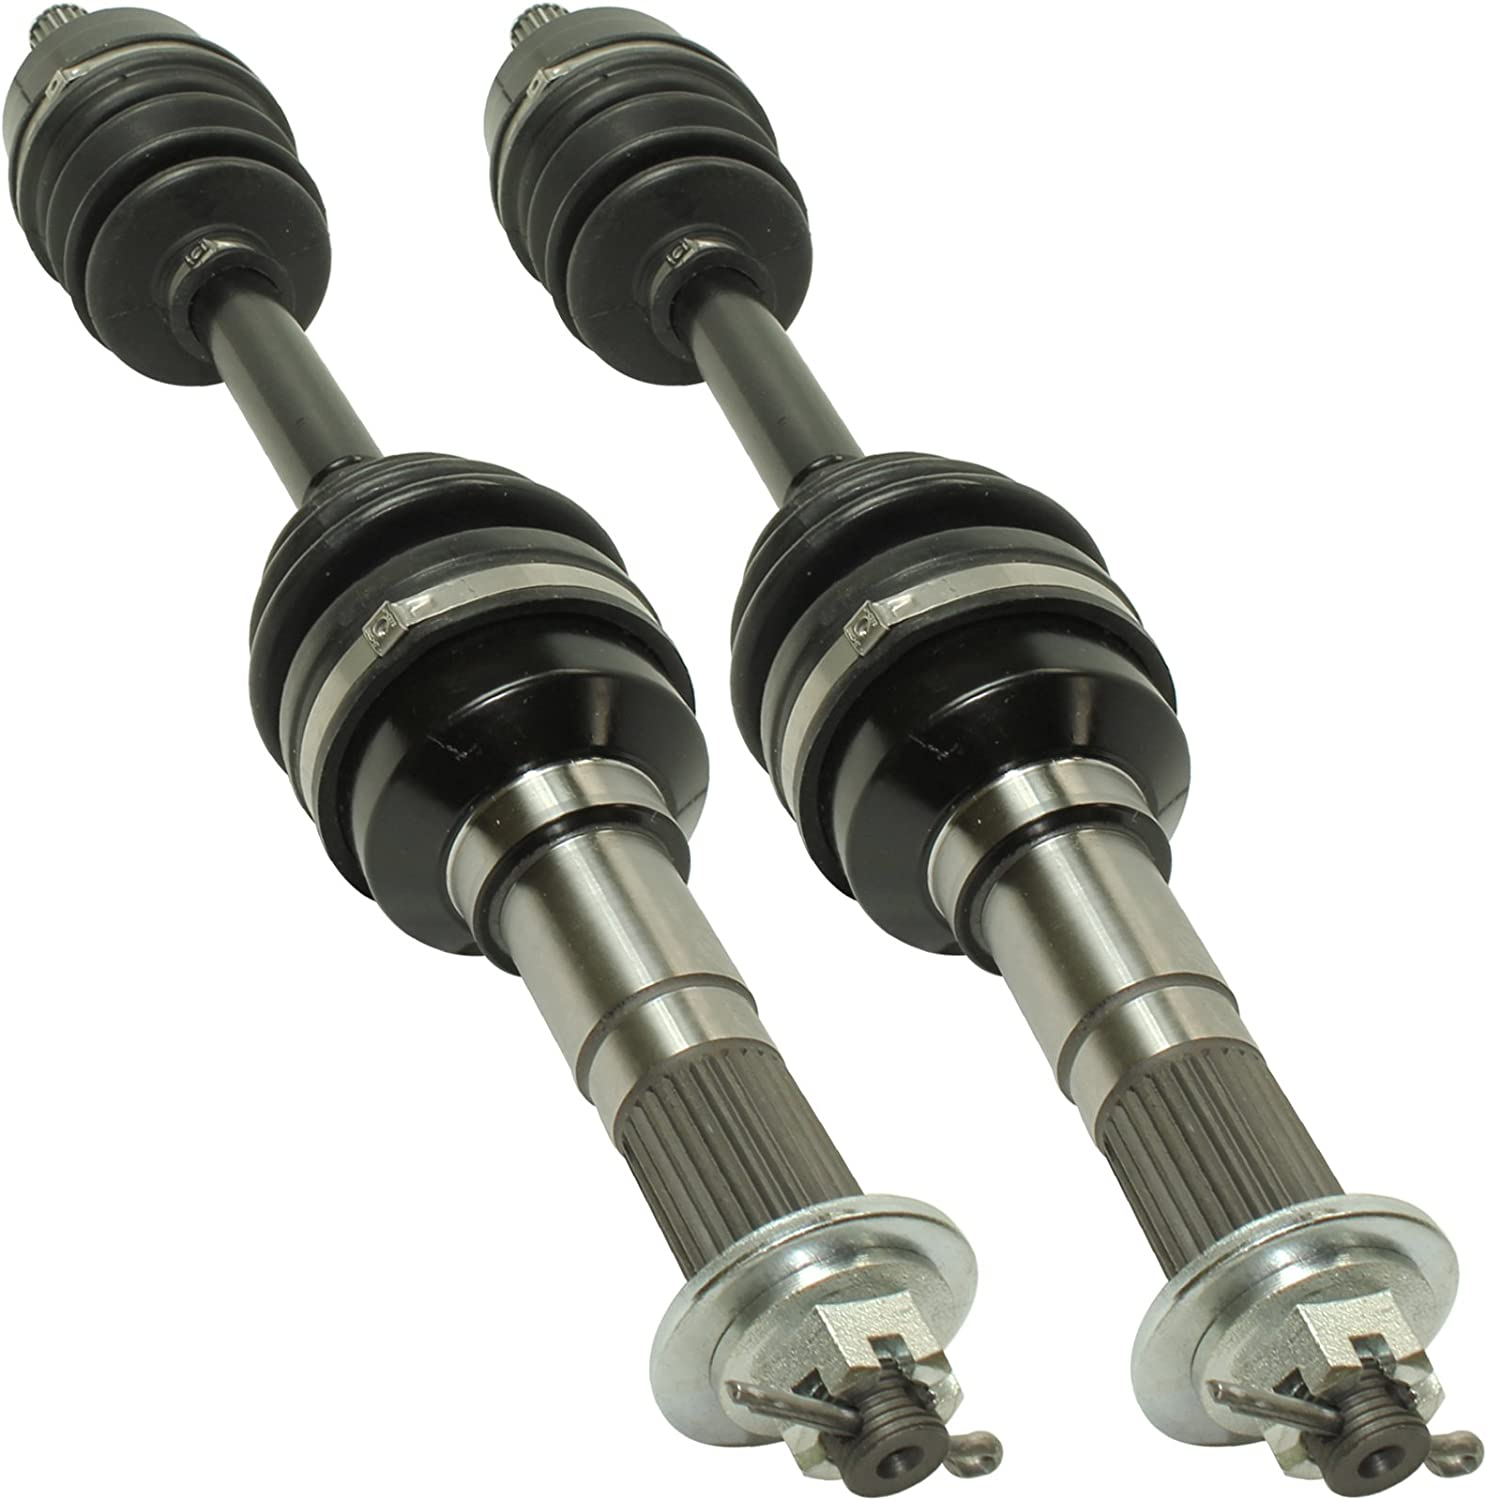 Qiilu CV Axle for 1989-1997 Yamaha BIG BEAR 350 YFM350FW 4WD Front Left//Right 2Pcs Complete Shaft Assemblies